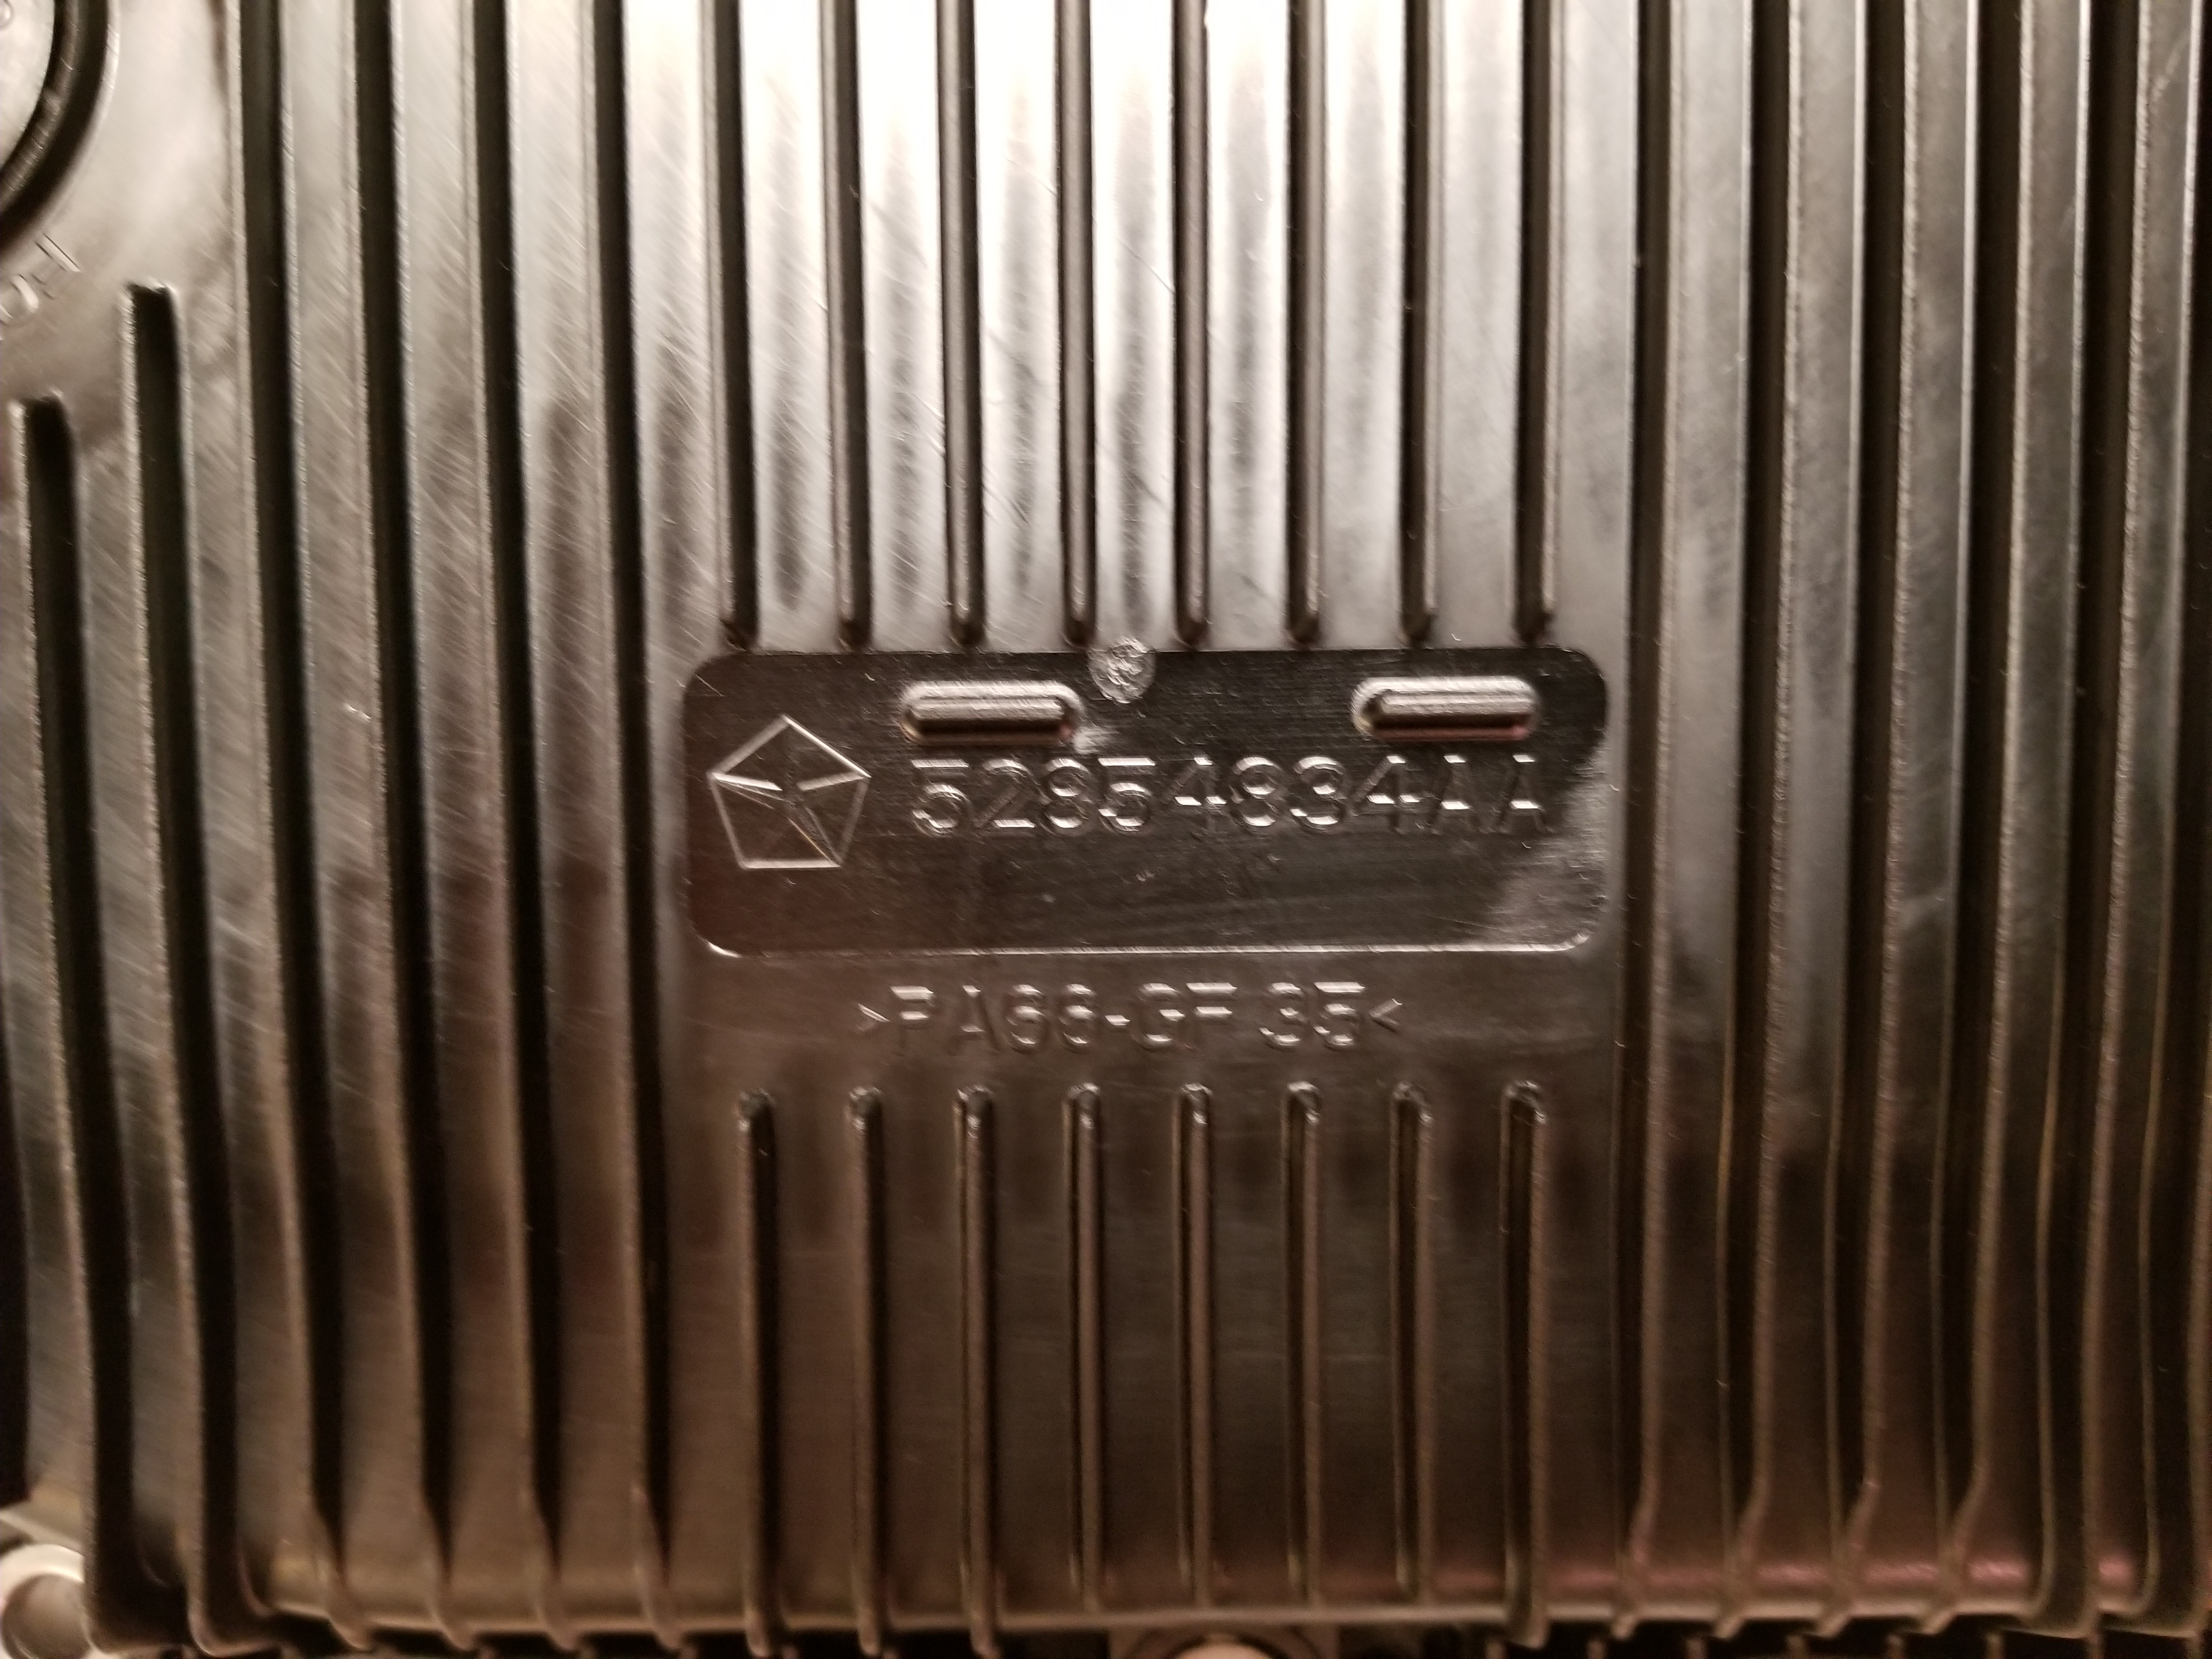 ZF 8HP plastic transmission pan differences